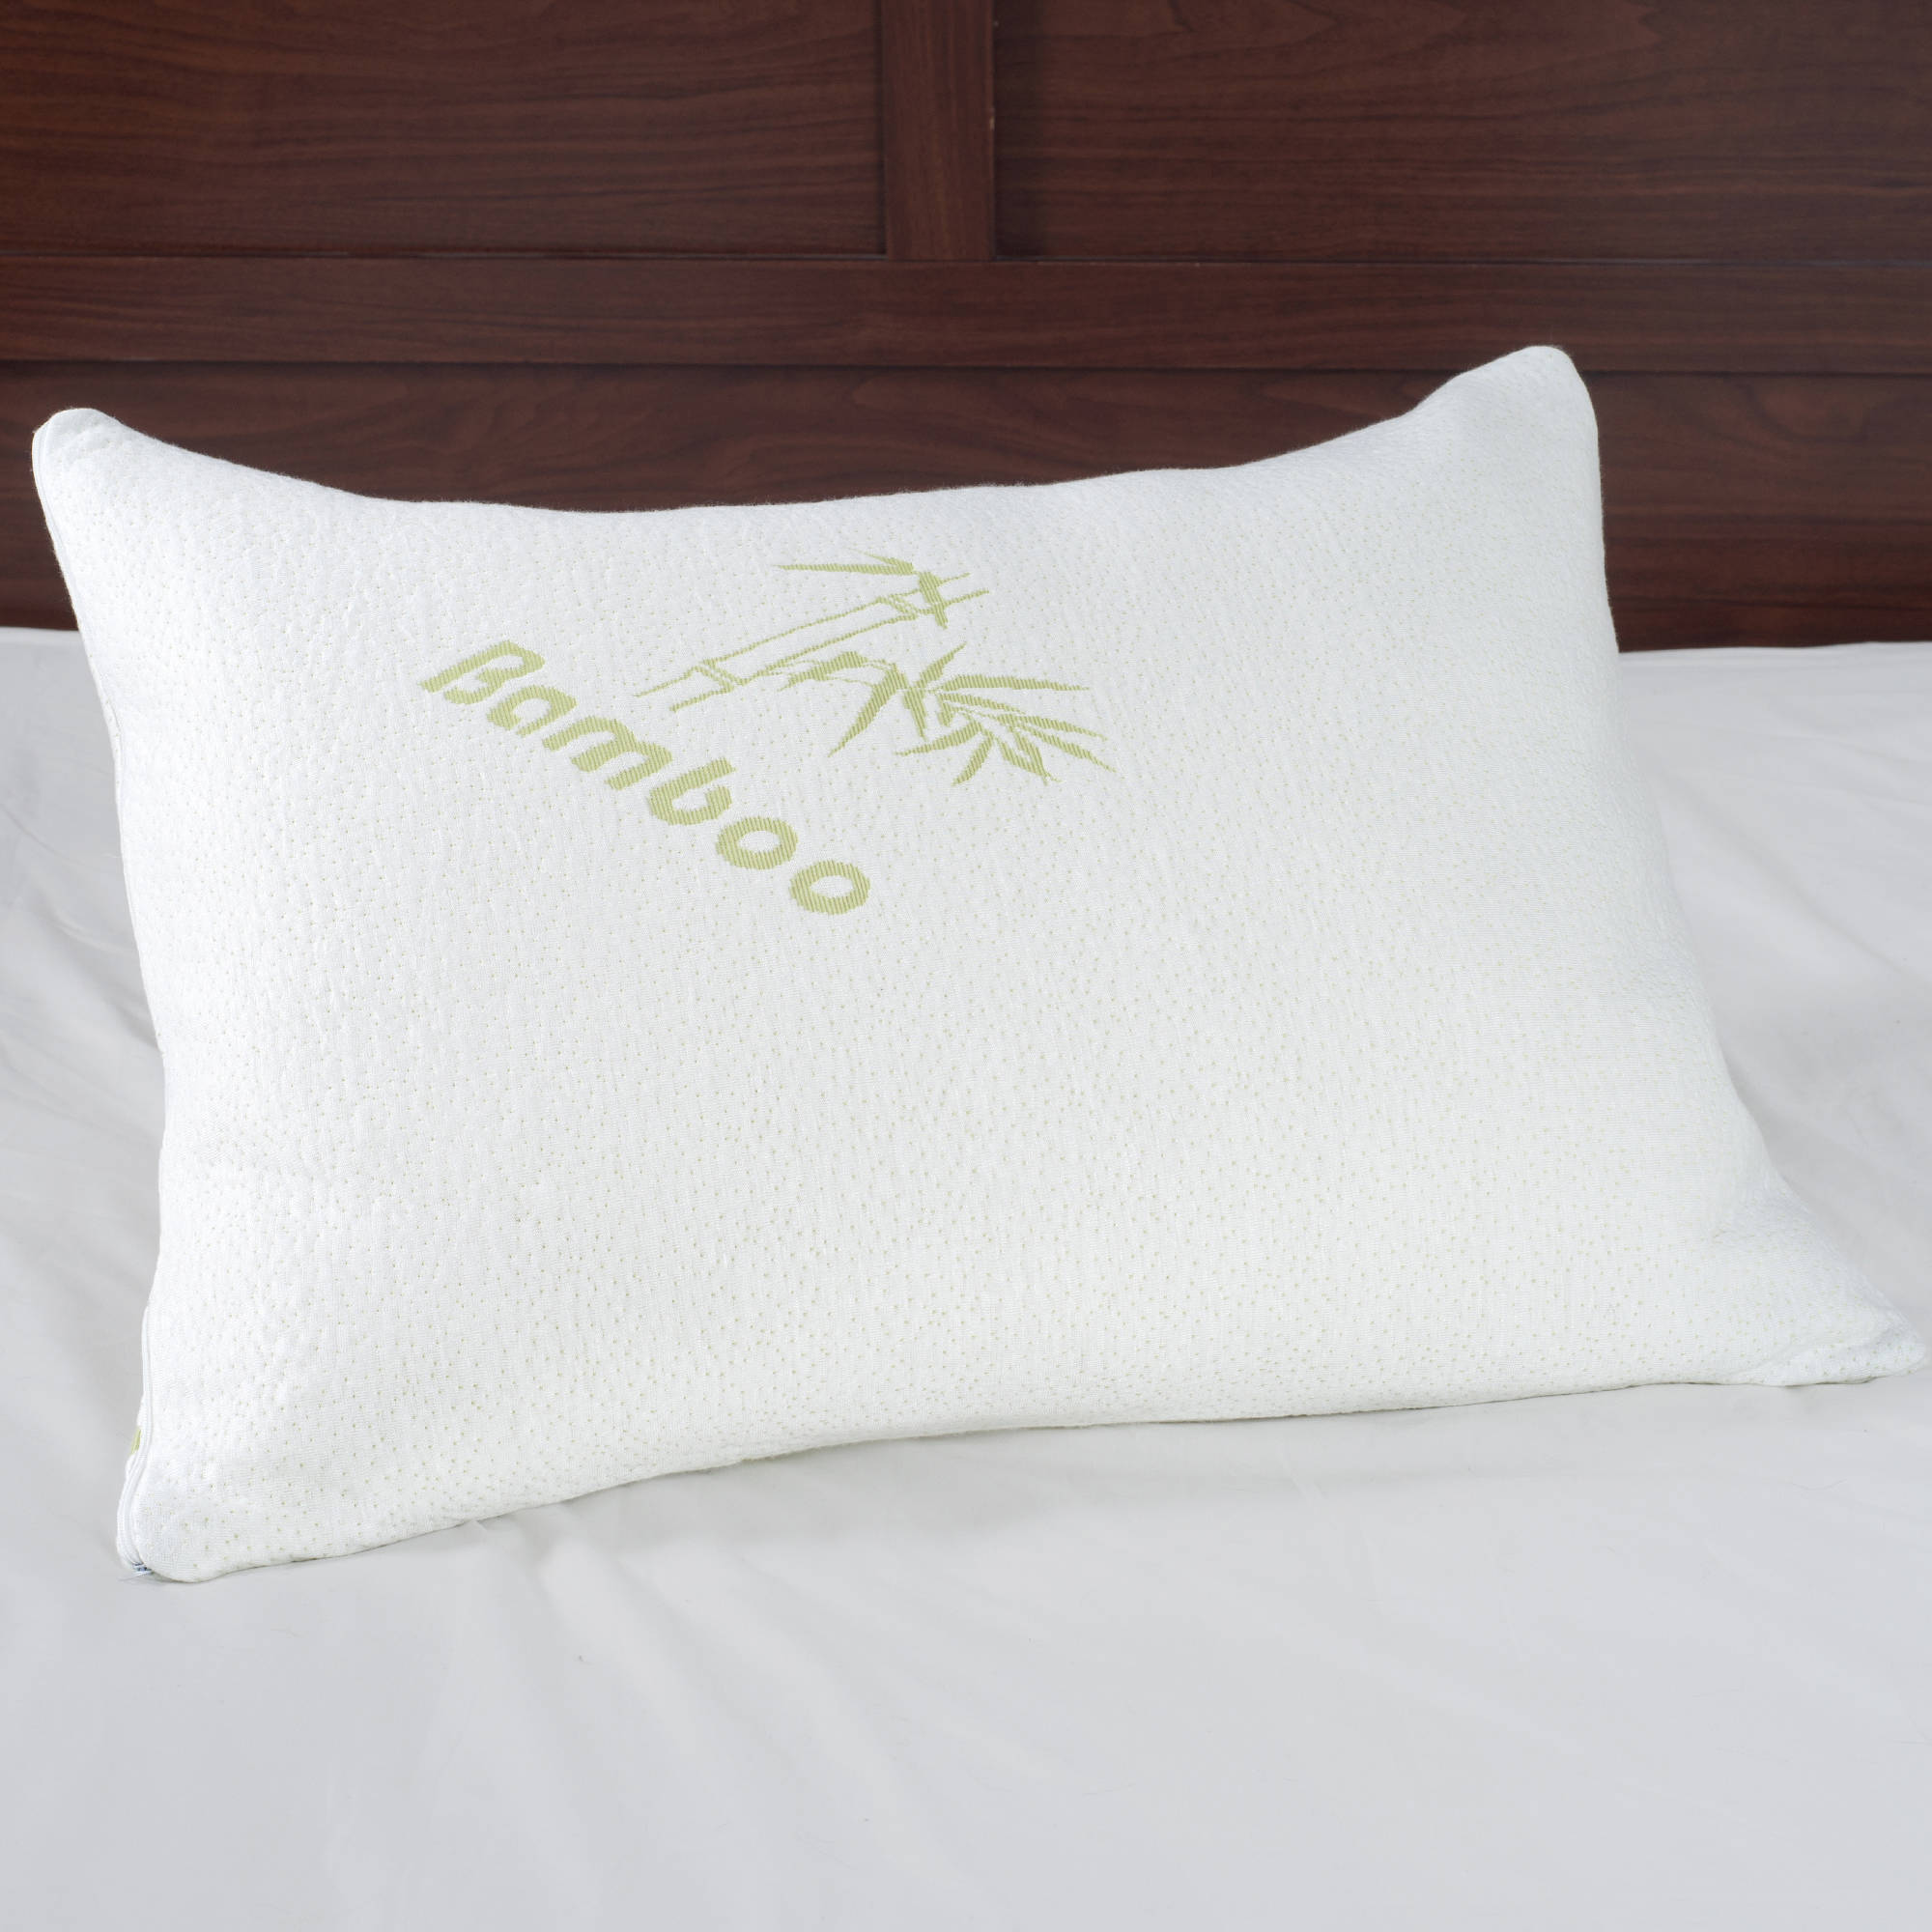 Memory Foam Pillow, Pillow Cover Bamboo from Rayon, Bed Pillows for Comfort and Support by... by Trademark Global LLC